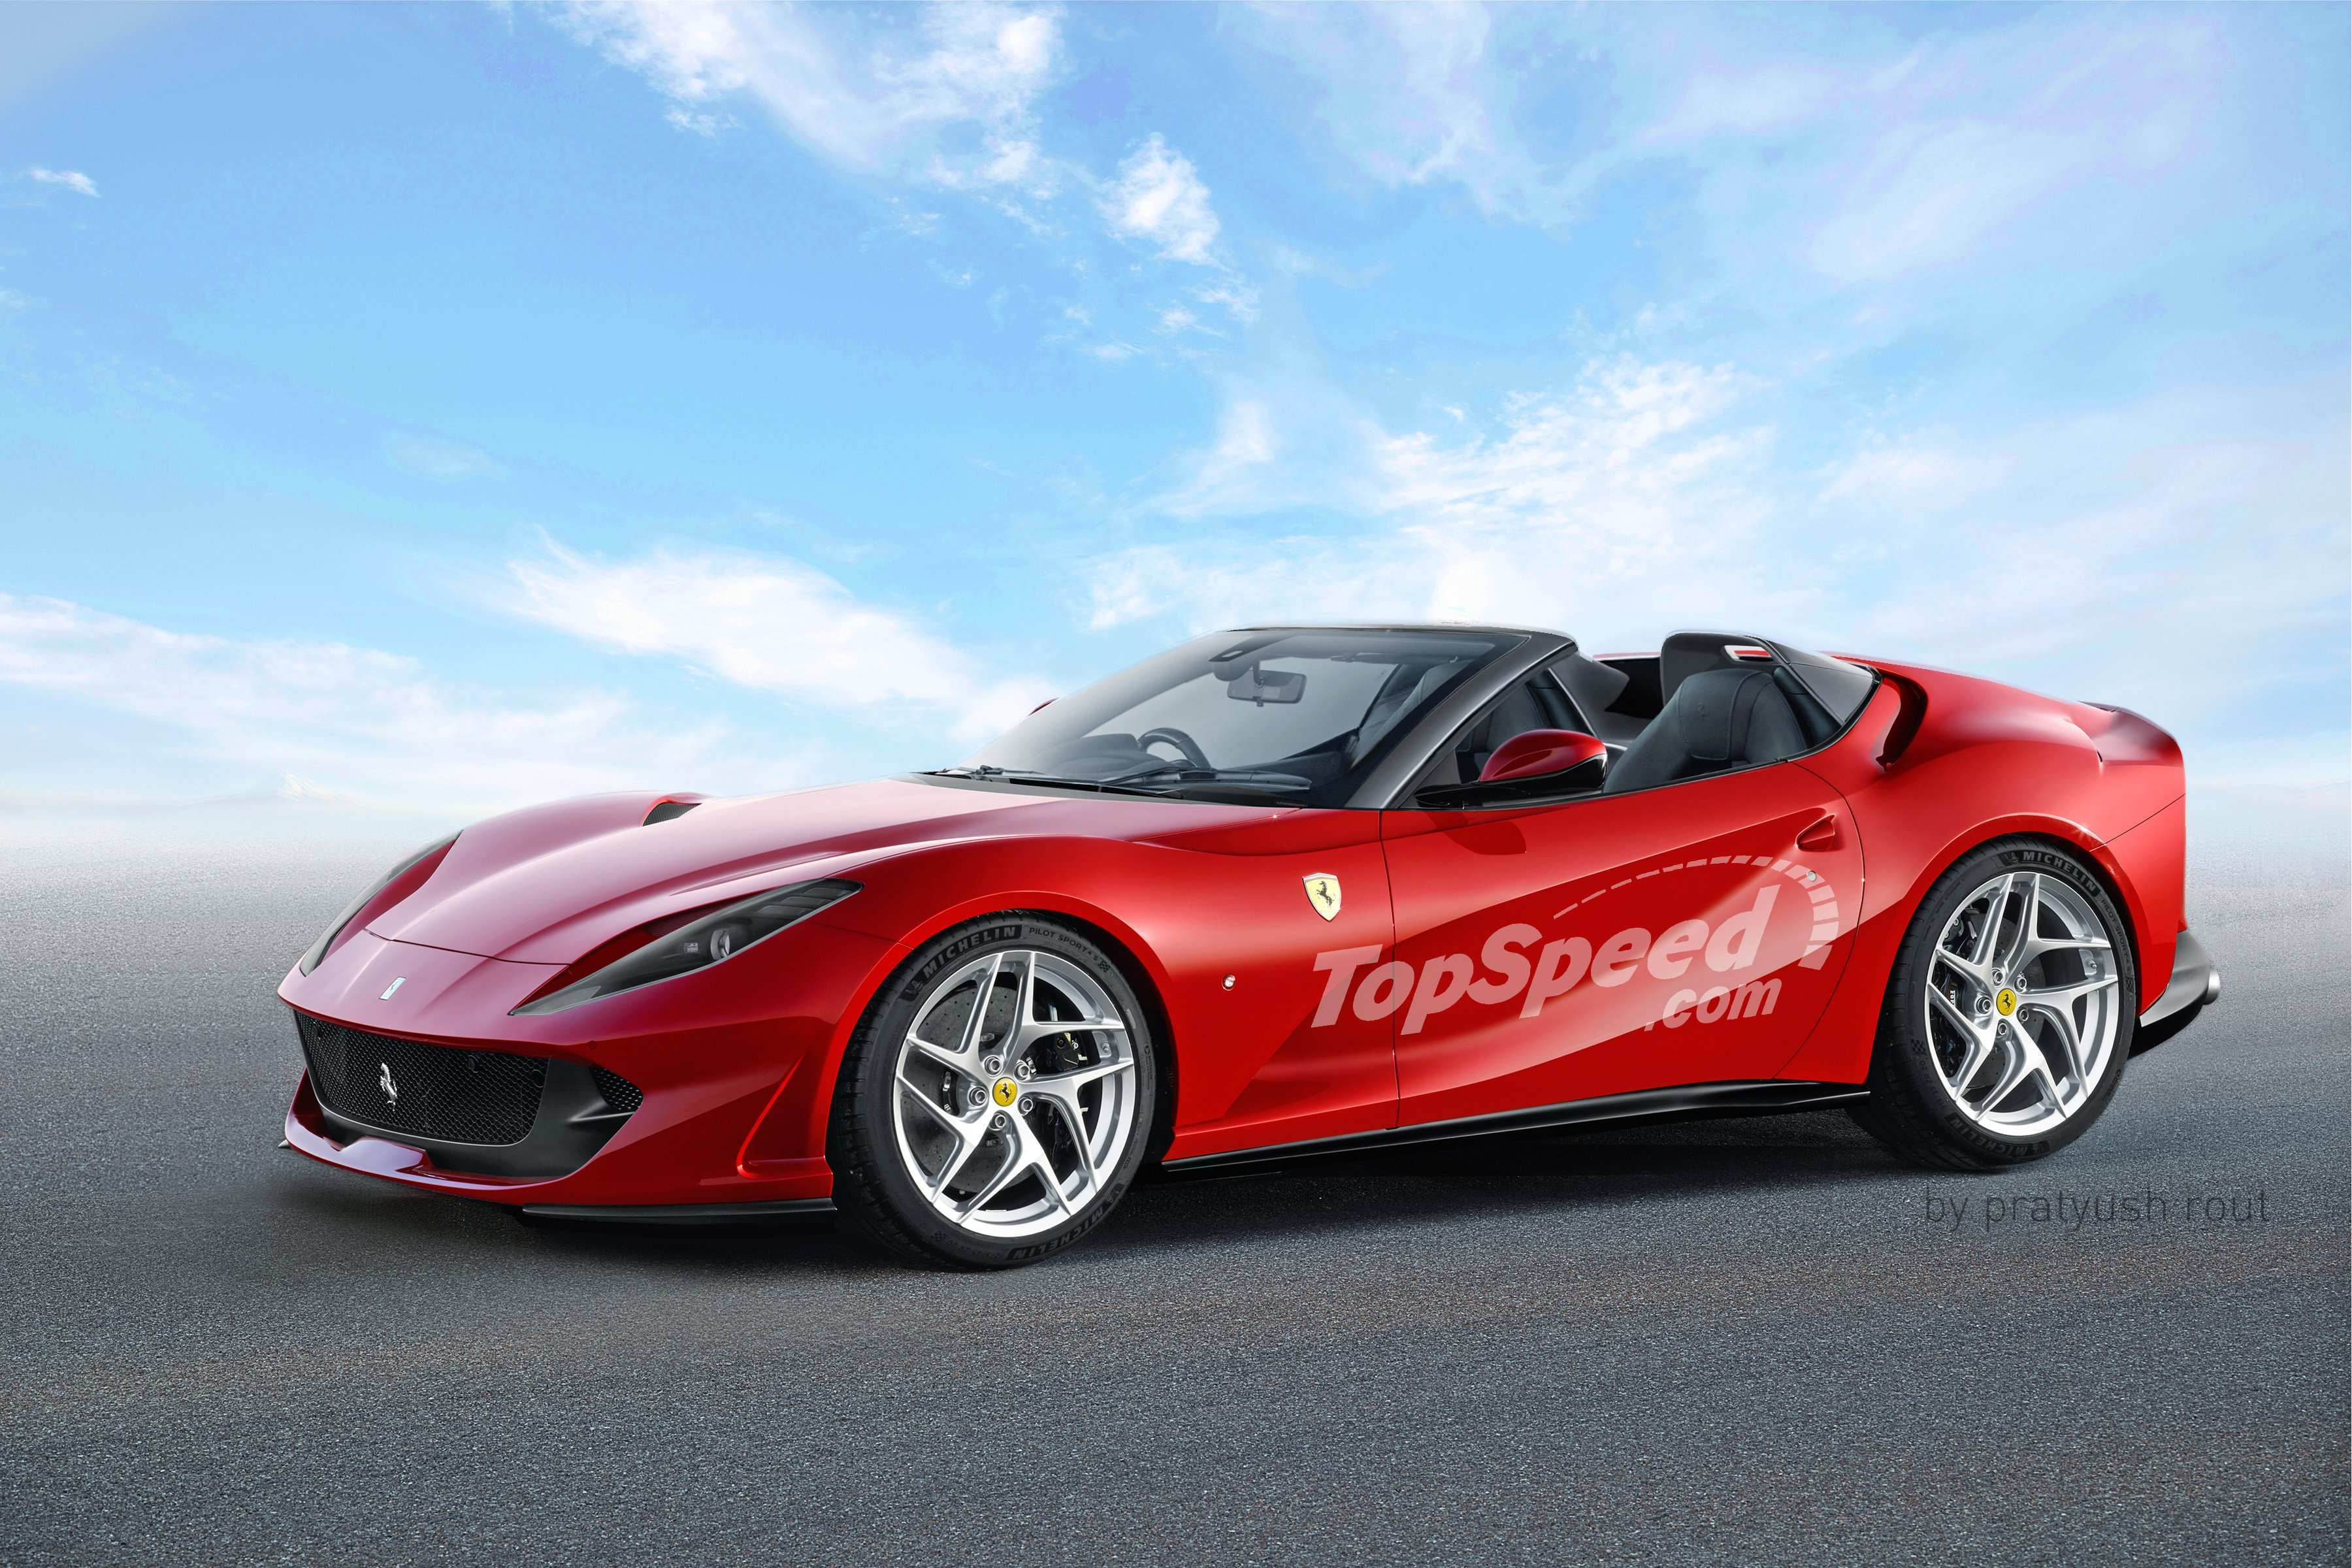 43 Gallery of 2019 Ferrari Superfast Interior Rumors with 2019 Ferrari Superfast Interior